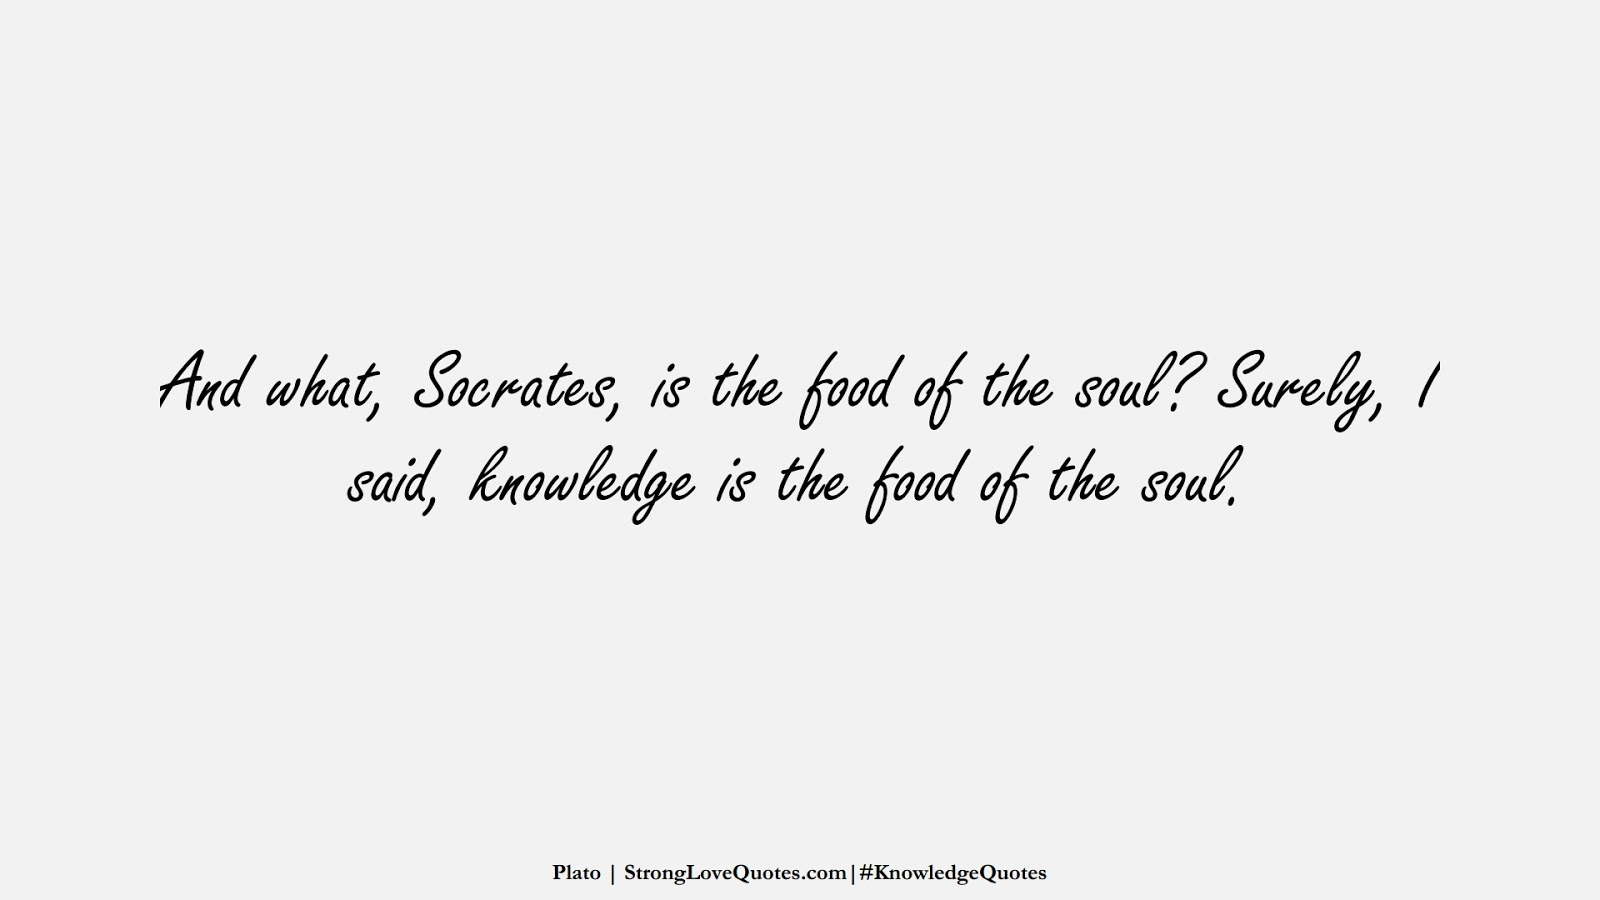 And what, Socrates, is the food of the soul? Surely, I said, knowledge is the food of the soul. (Plato);  #KnowledgeQuotes